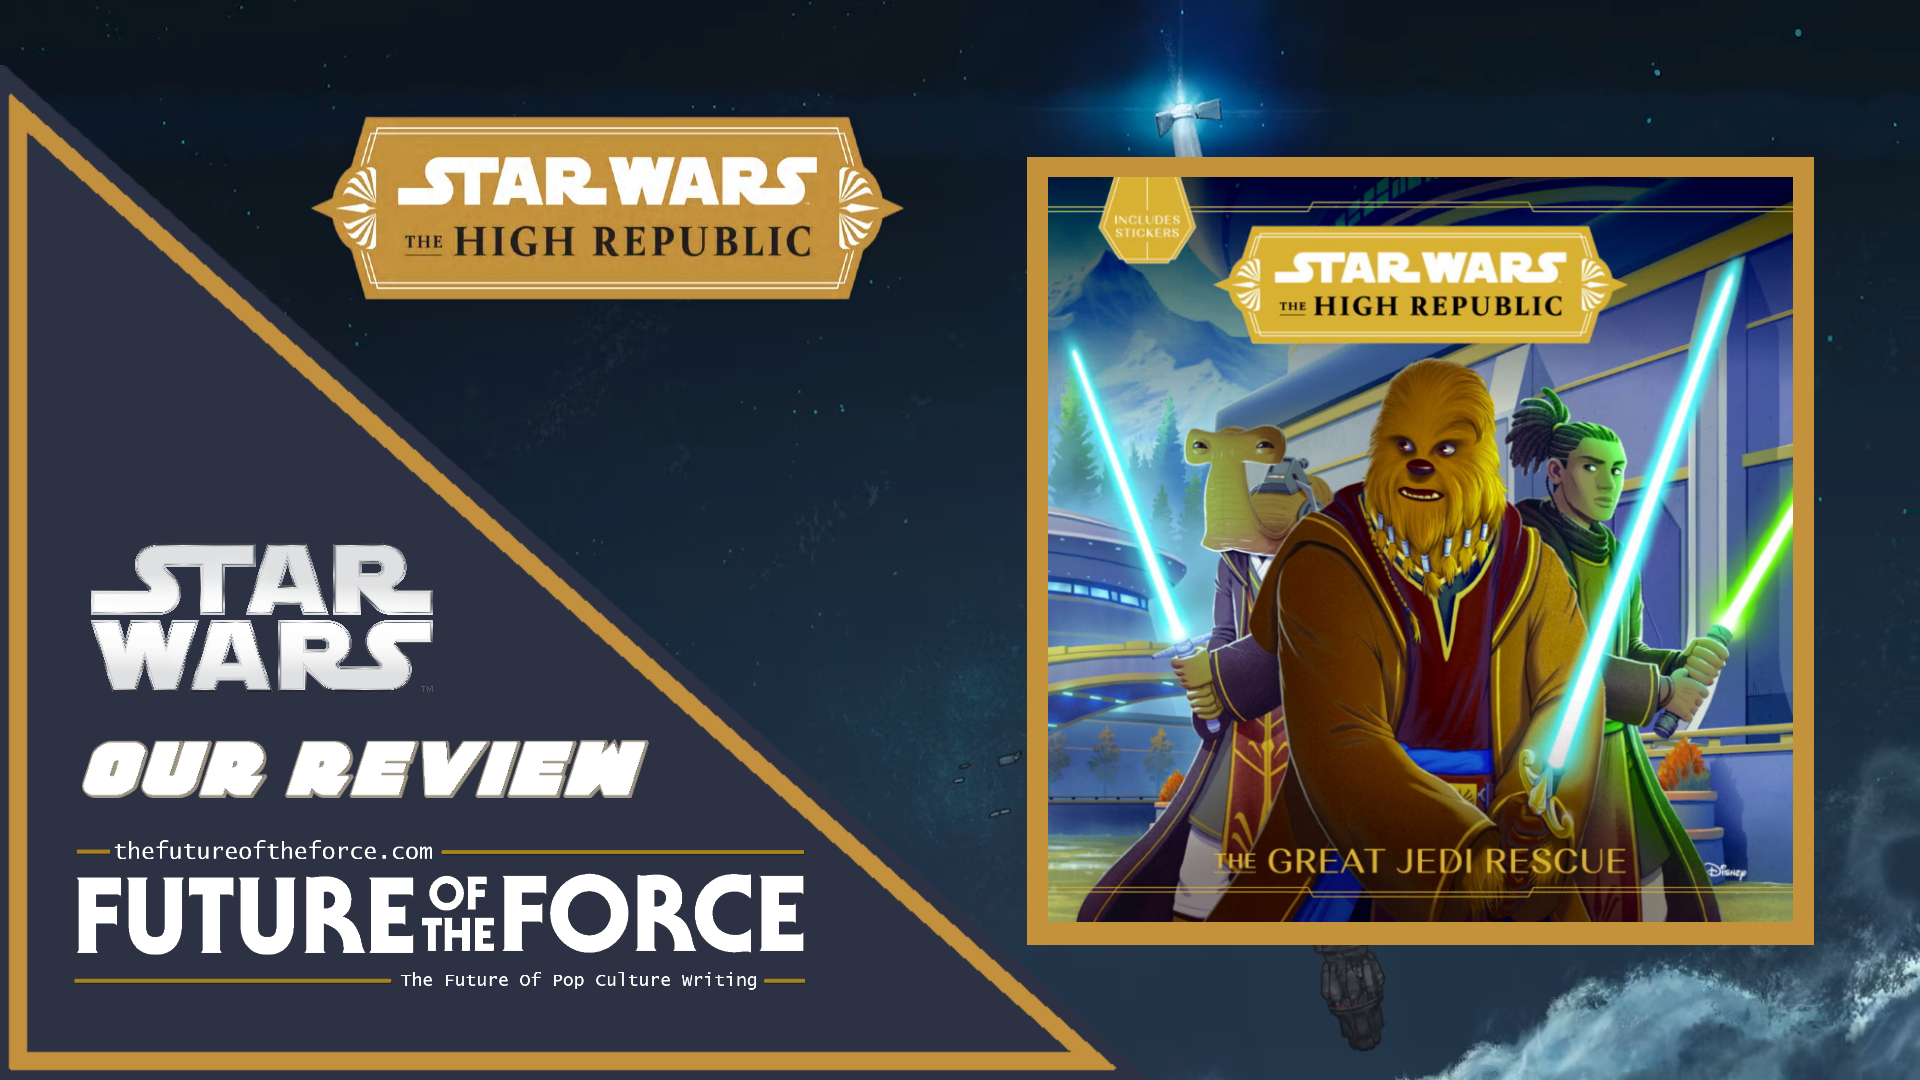 Star Wars The High Republic - The Great Jedi Rescue Review